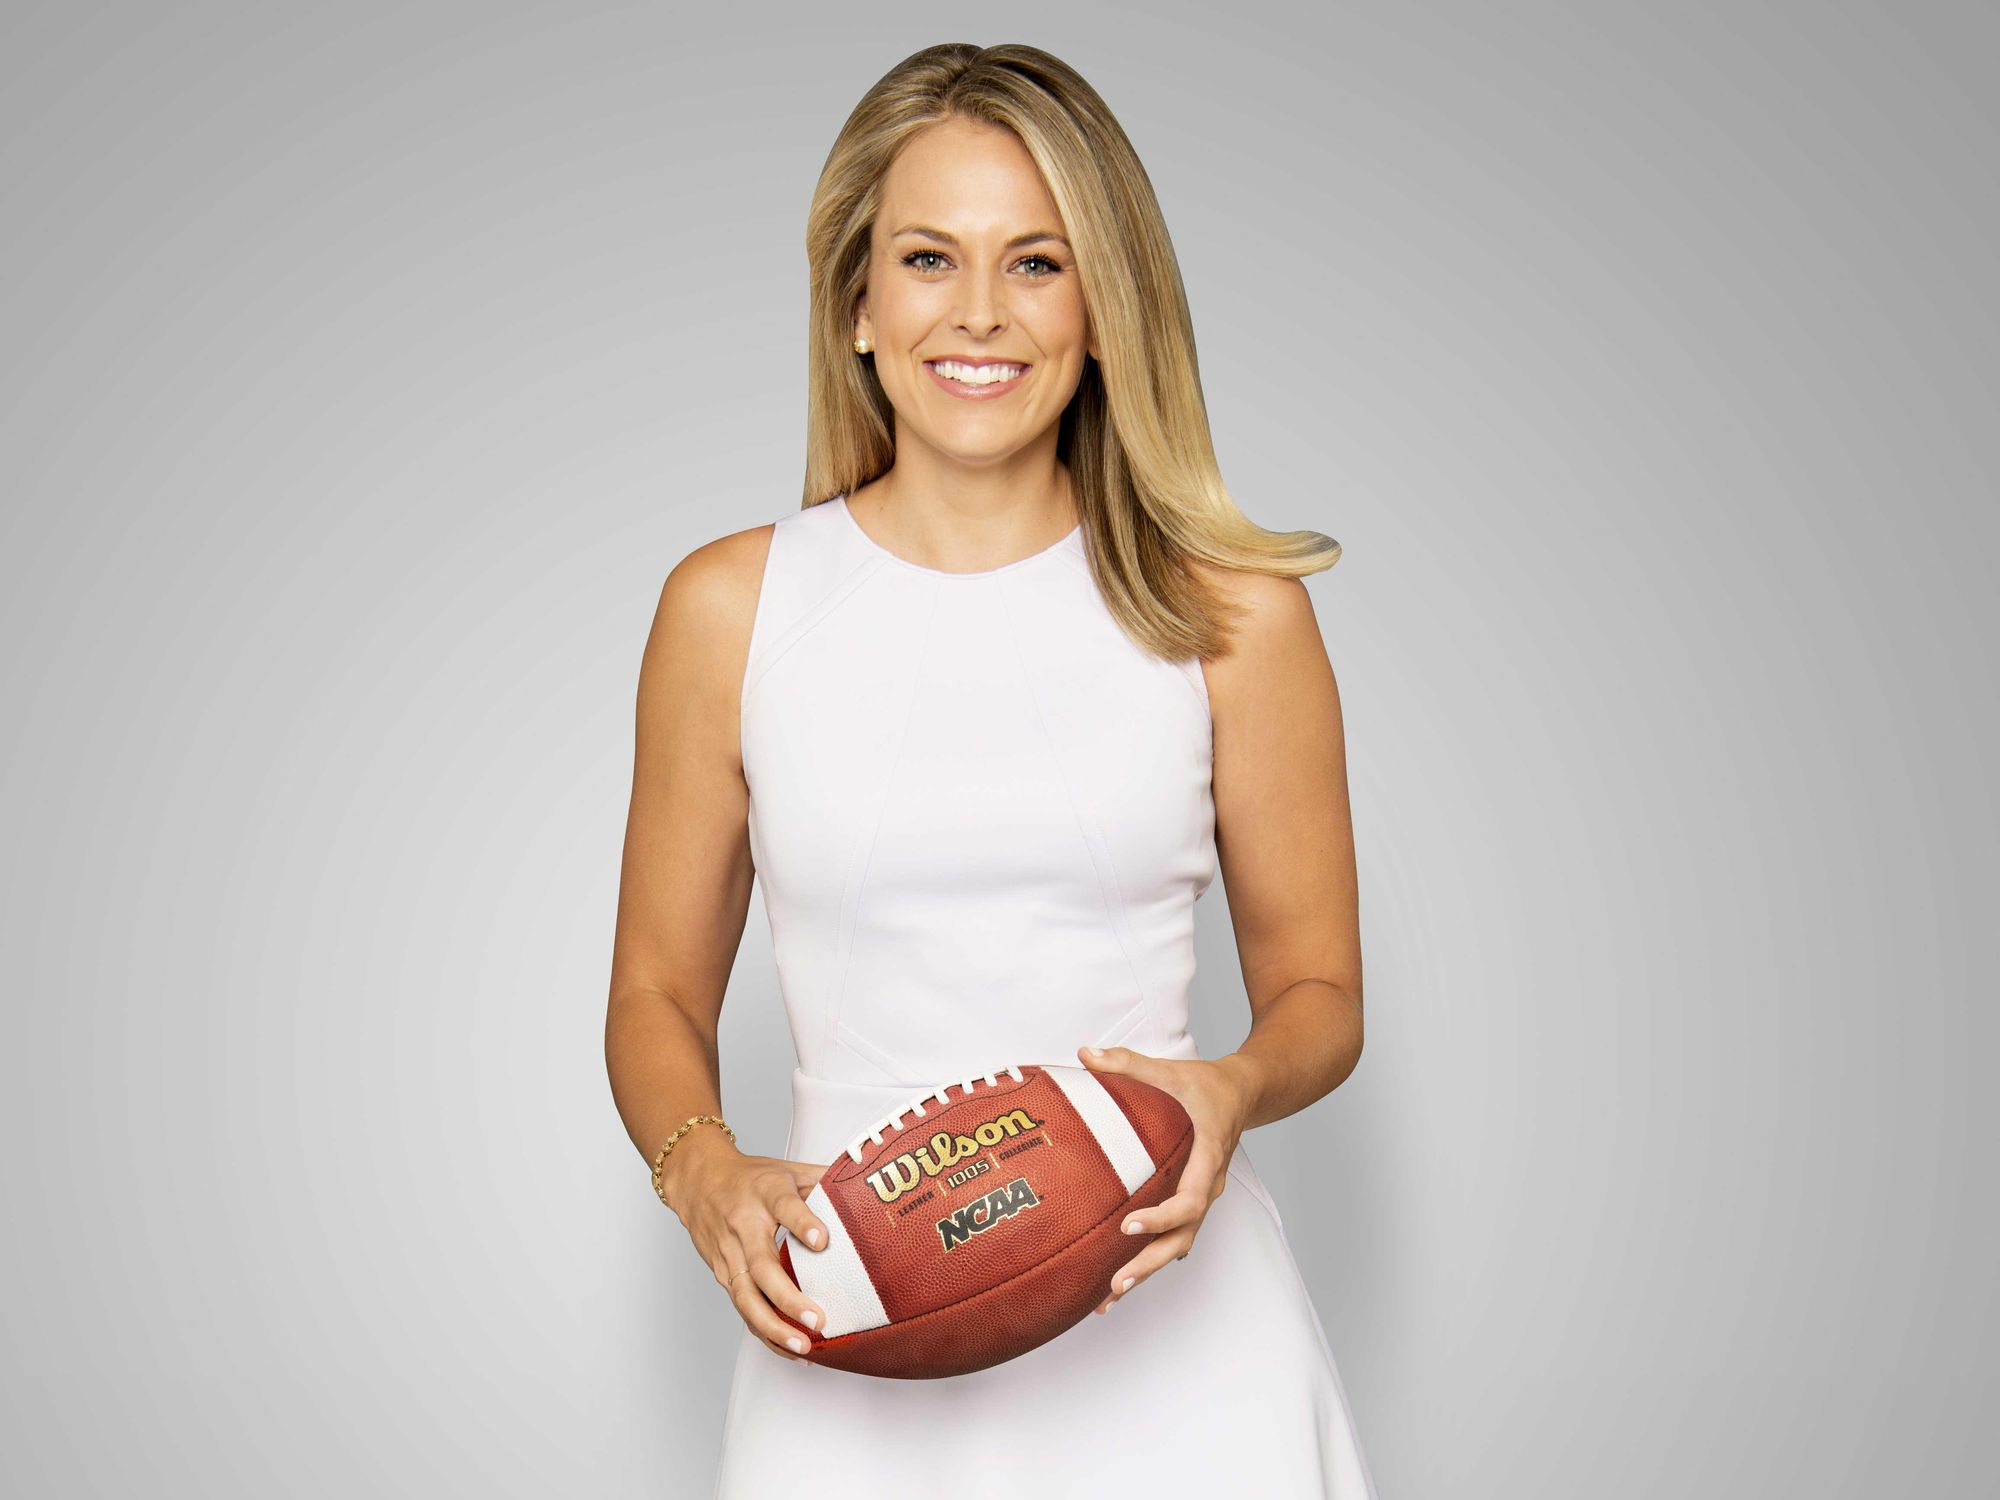 Jamie Erdahl, of SEC on CBS